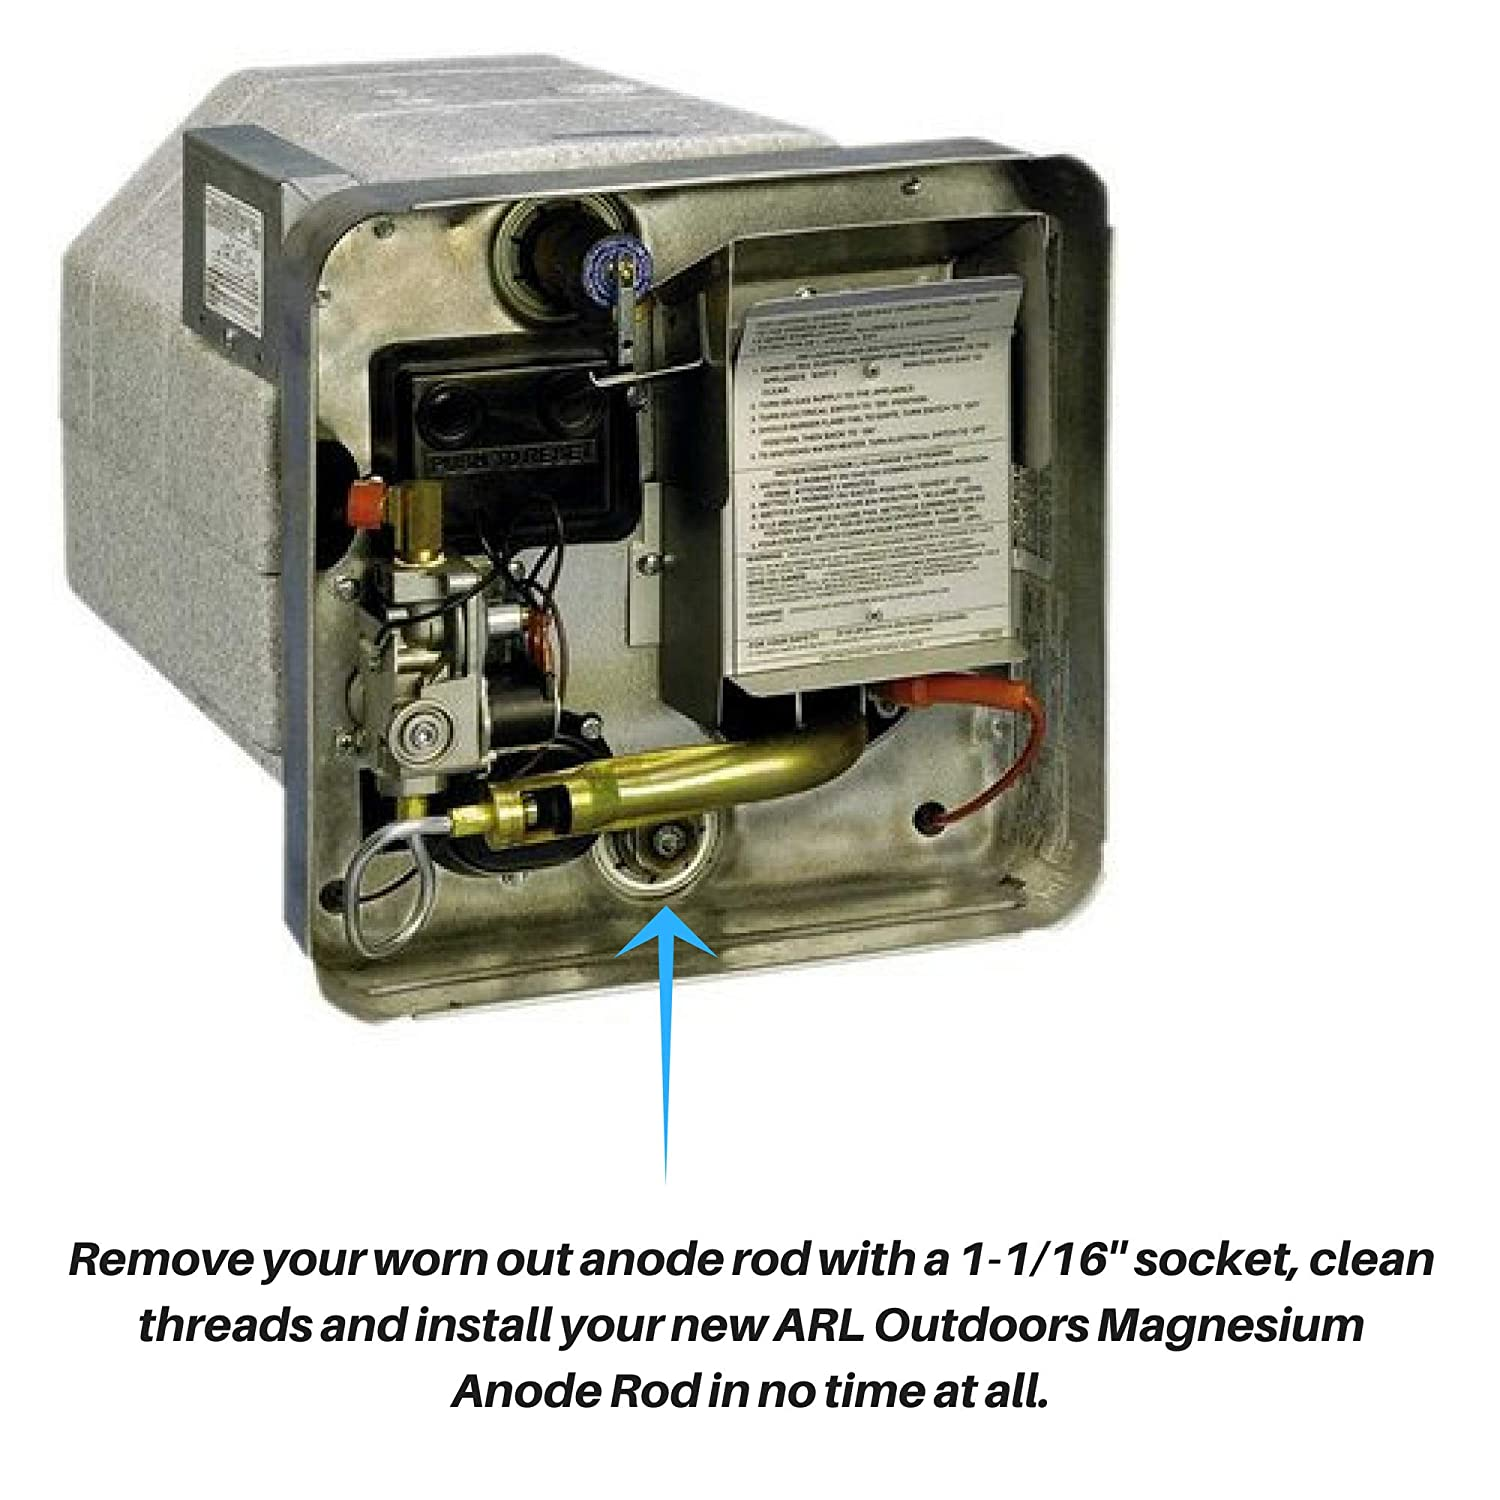 What is the purpose of the magnesium anode in the water heater